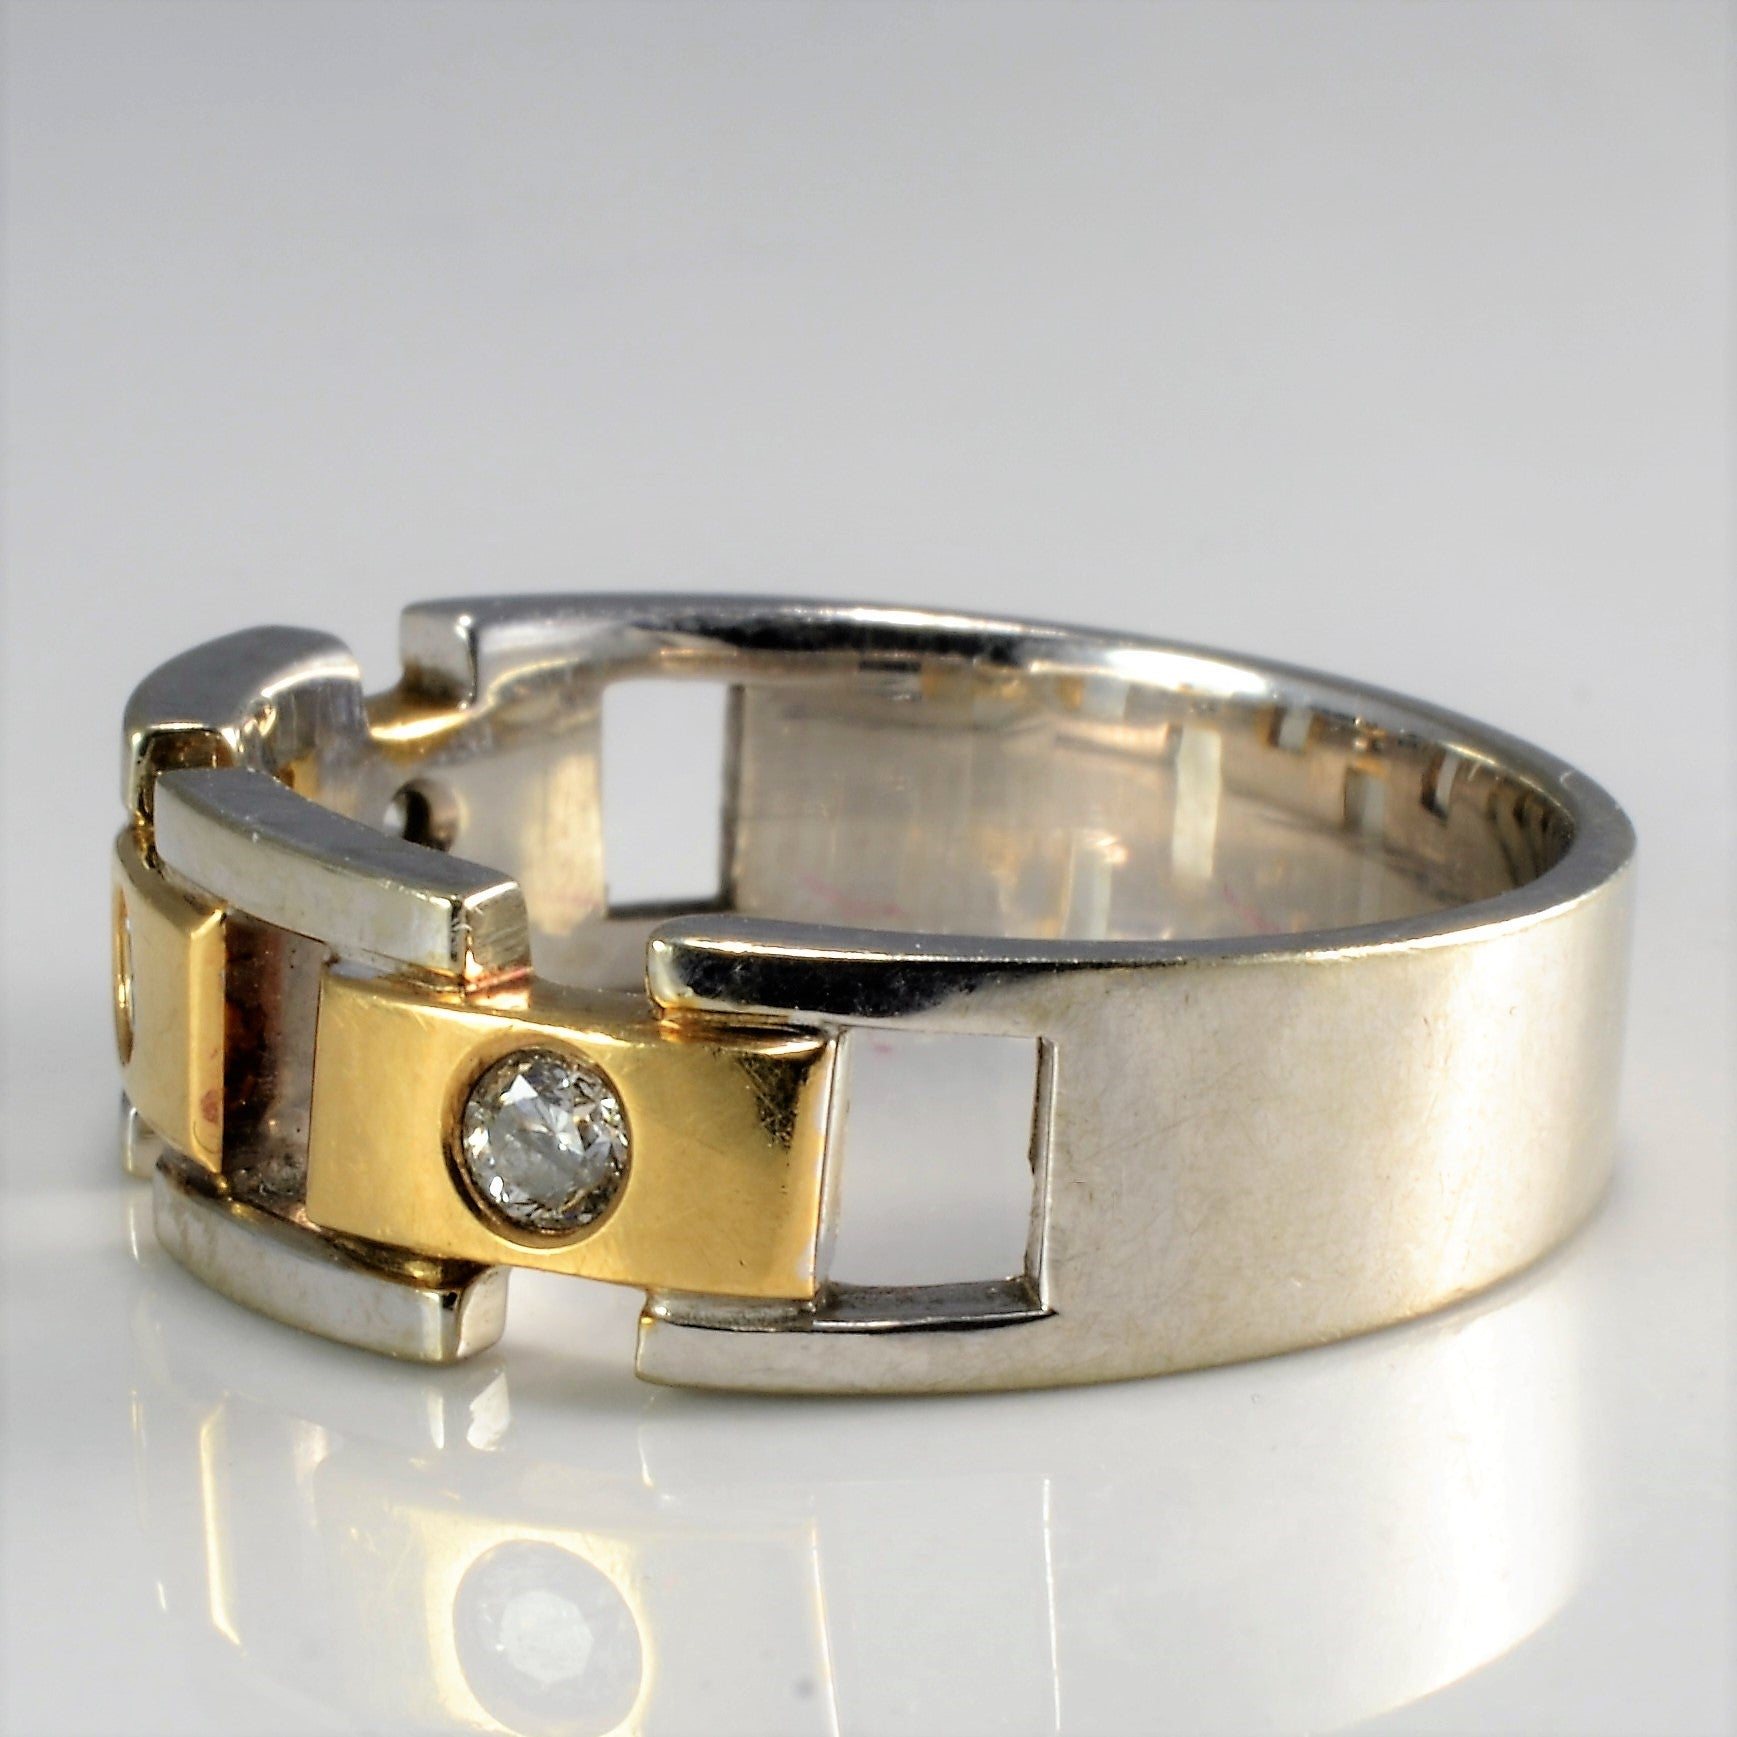 Bezel Set Diamond Two Tone Gold Unisex Ring | 0.21 ctw, SZ 10.75 |